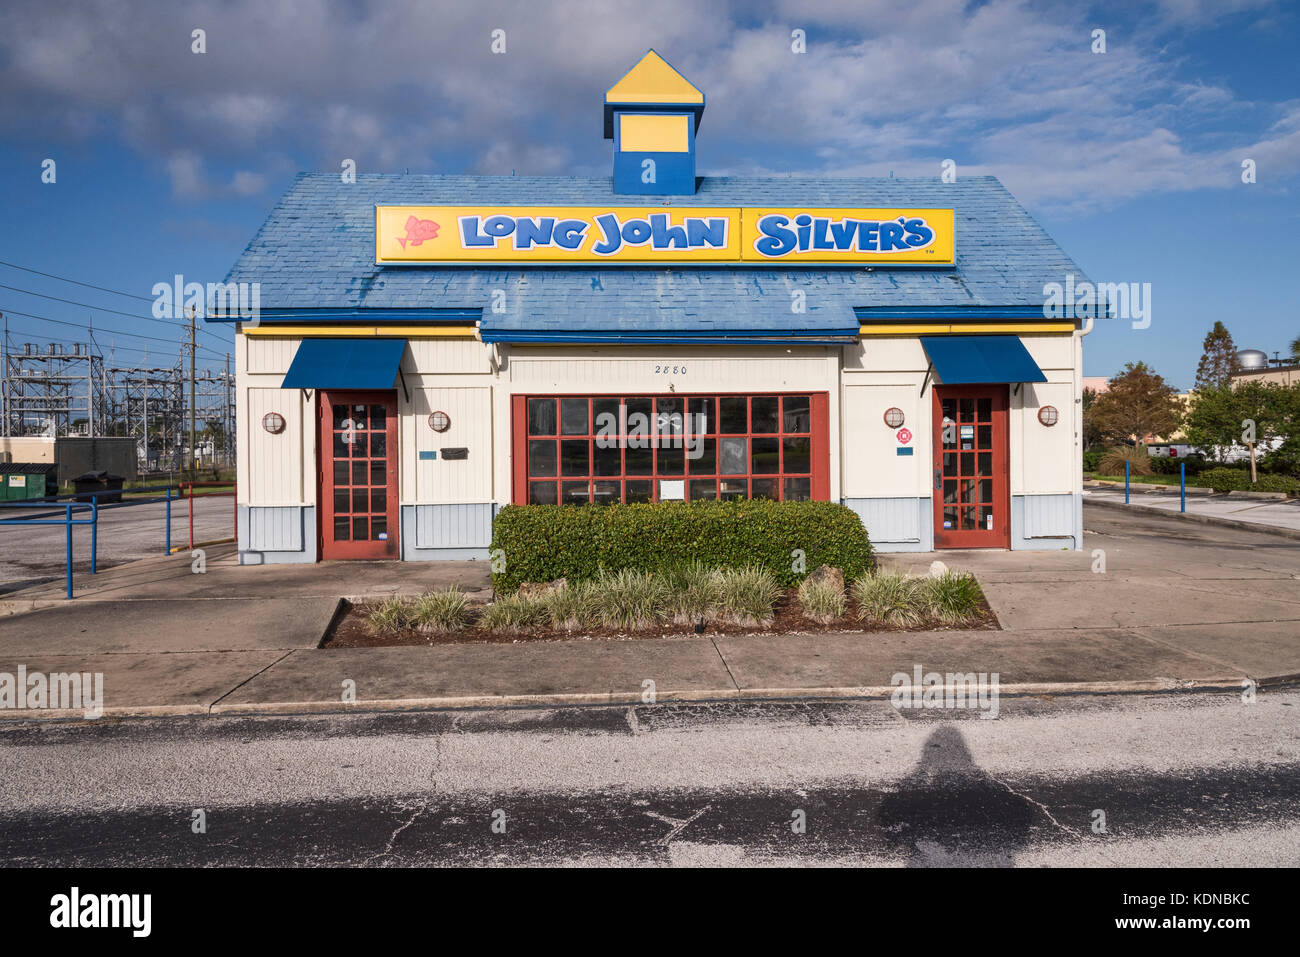 Find a Long John Silver's near you or see all Long John Silver's locations. View the Long John Silver's menu, read Long John Silver's reviews, and get Long John Silver's hours and directions.2/5(47).